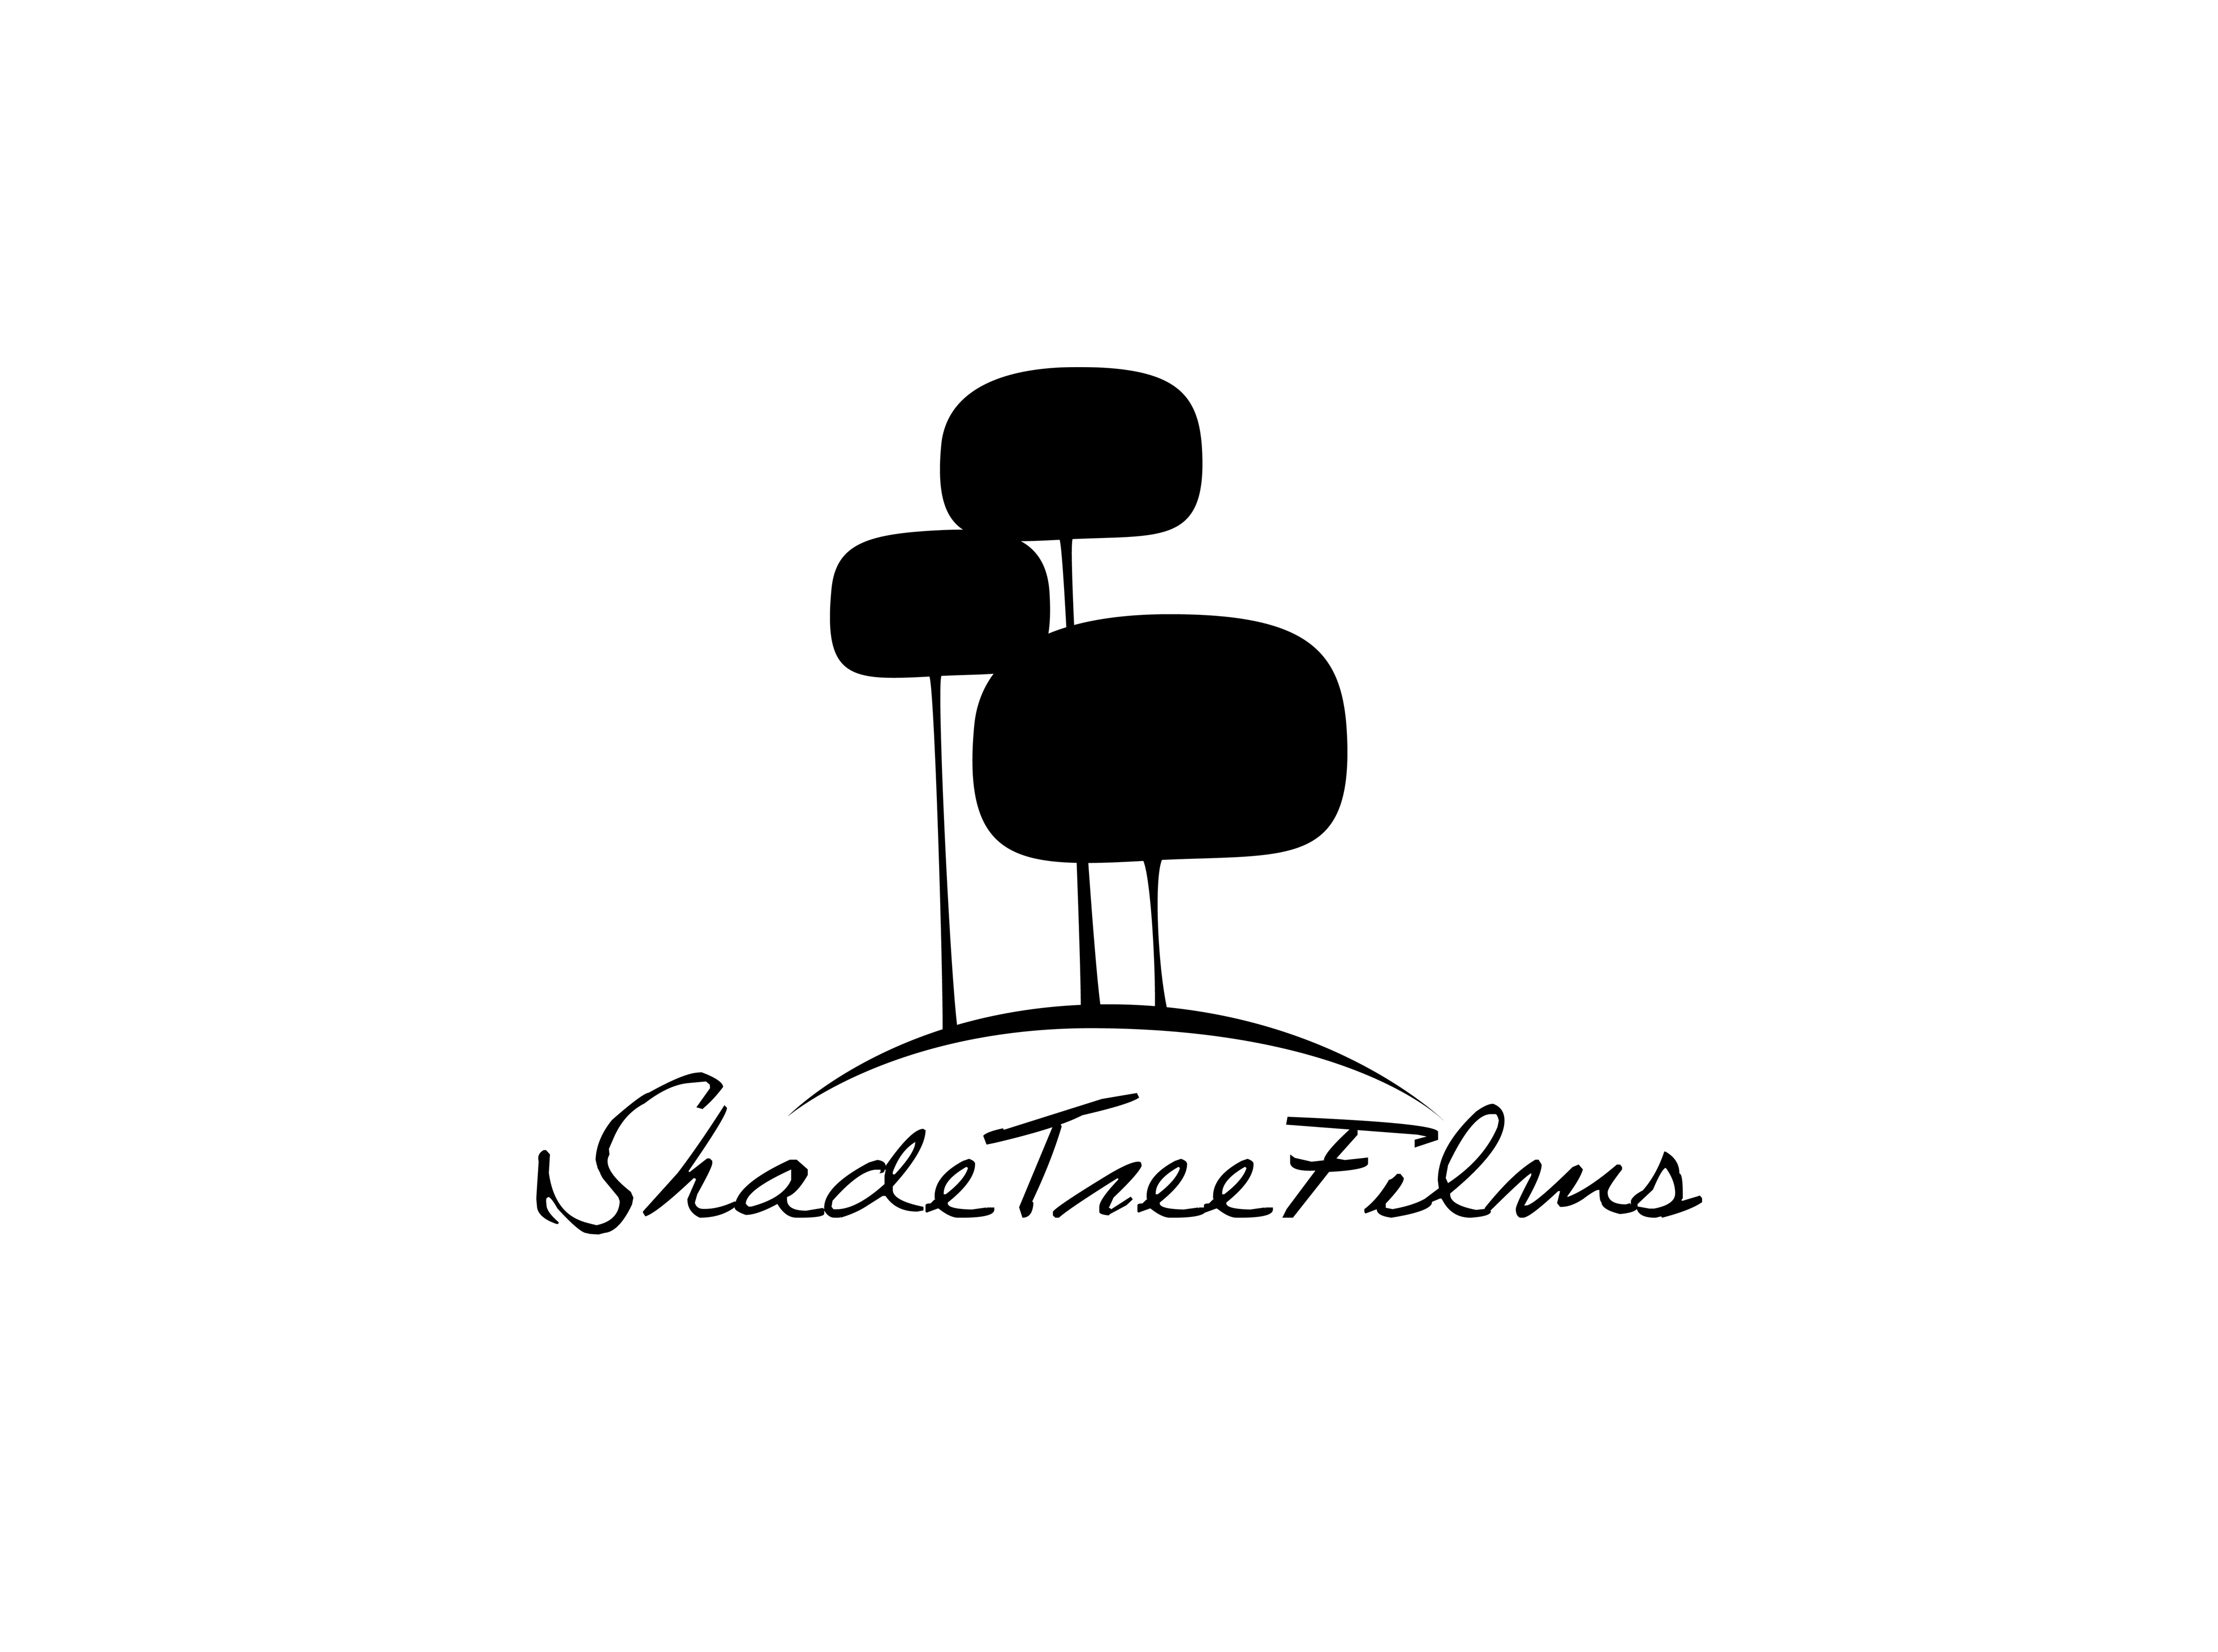 ShadeTreeFilms